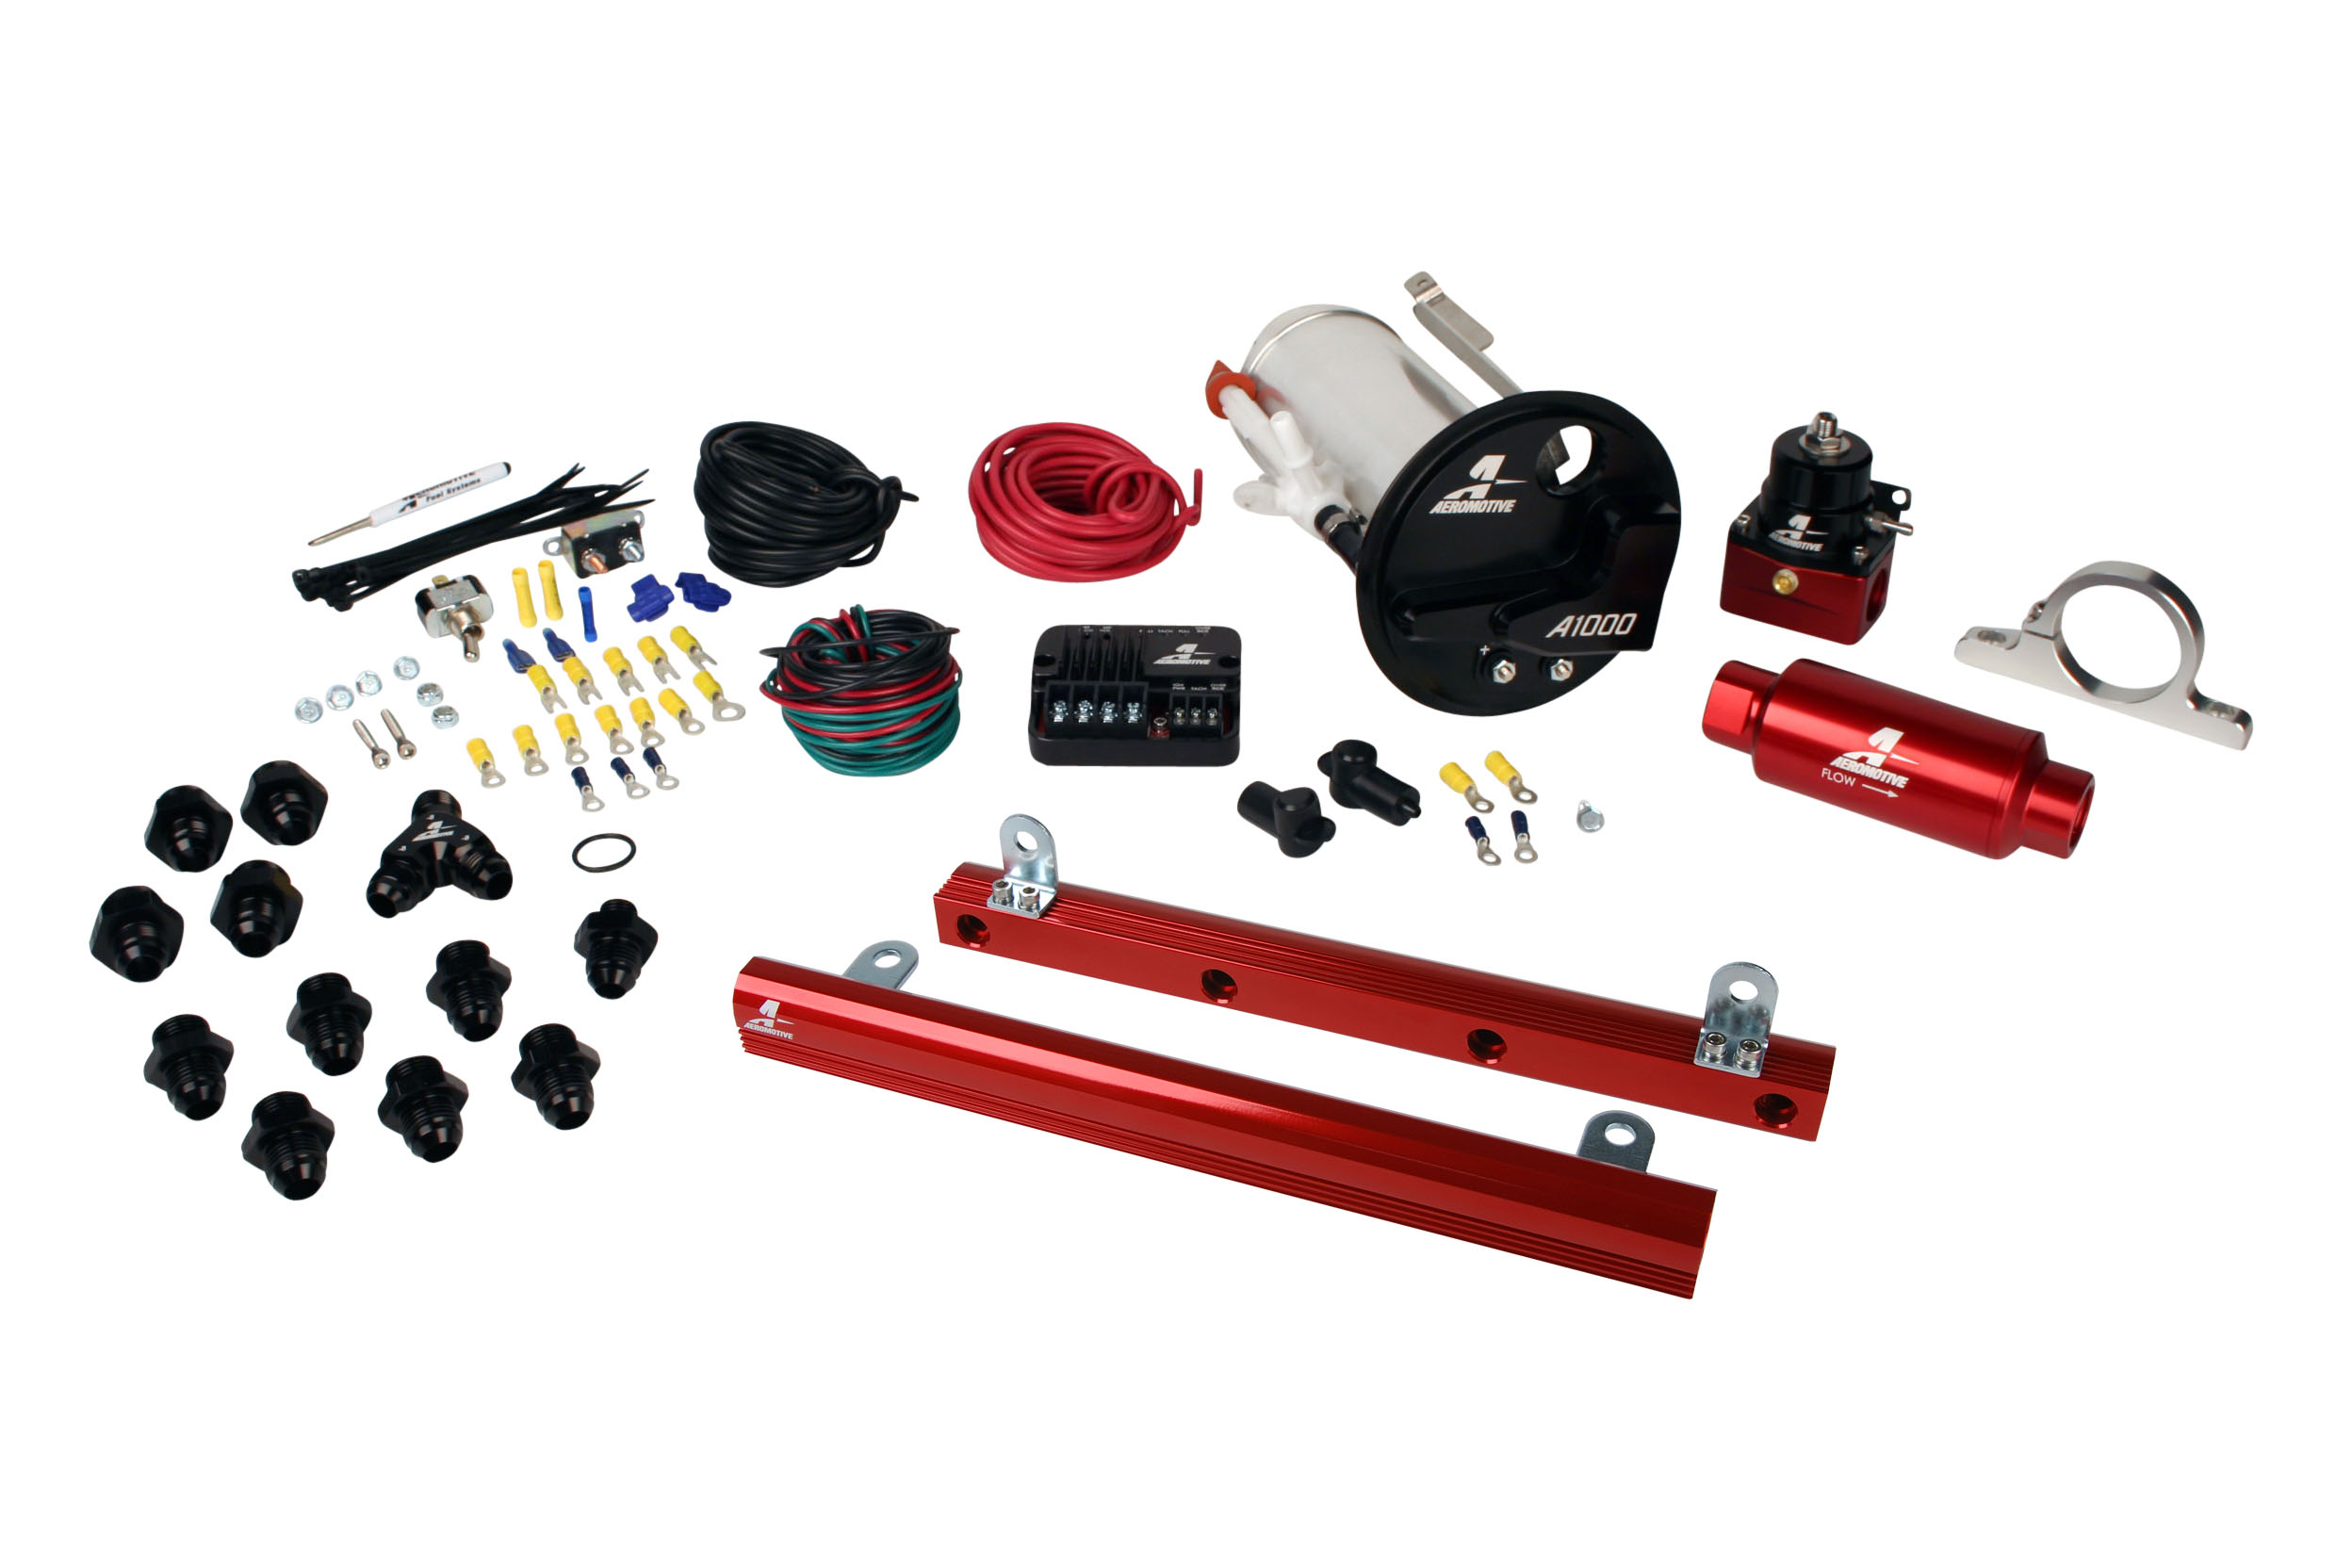 2007-2012 Ford Mustang Shelby GT500 Aeromotive Stealth A1000 Street Fuel System w/5.4L CJ Fuel Rails